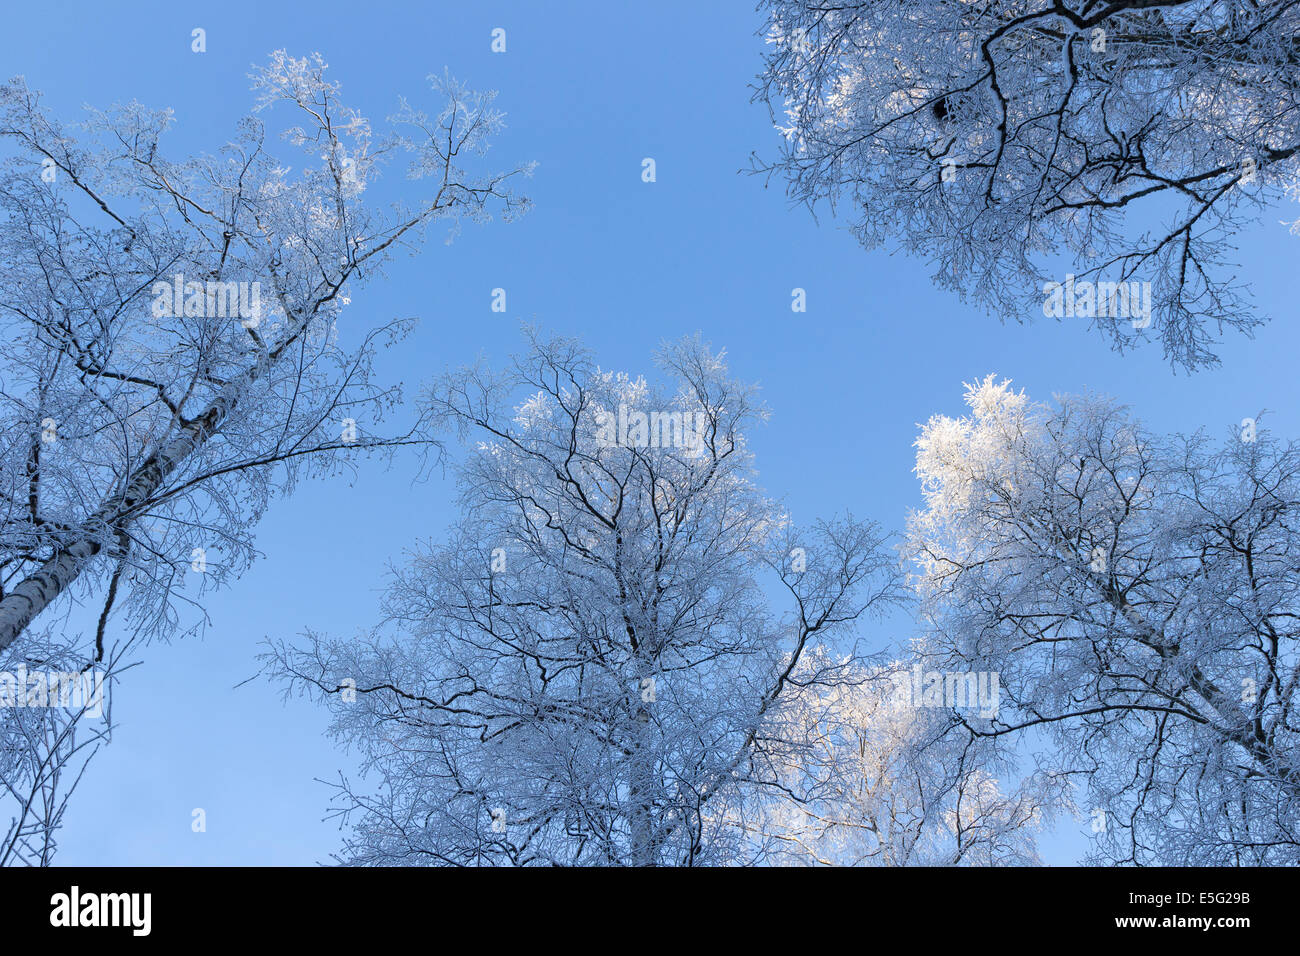 Frosty trees viewed from below at a bright & clear day - Stock Image